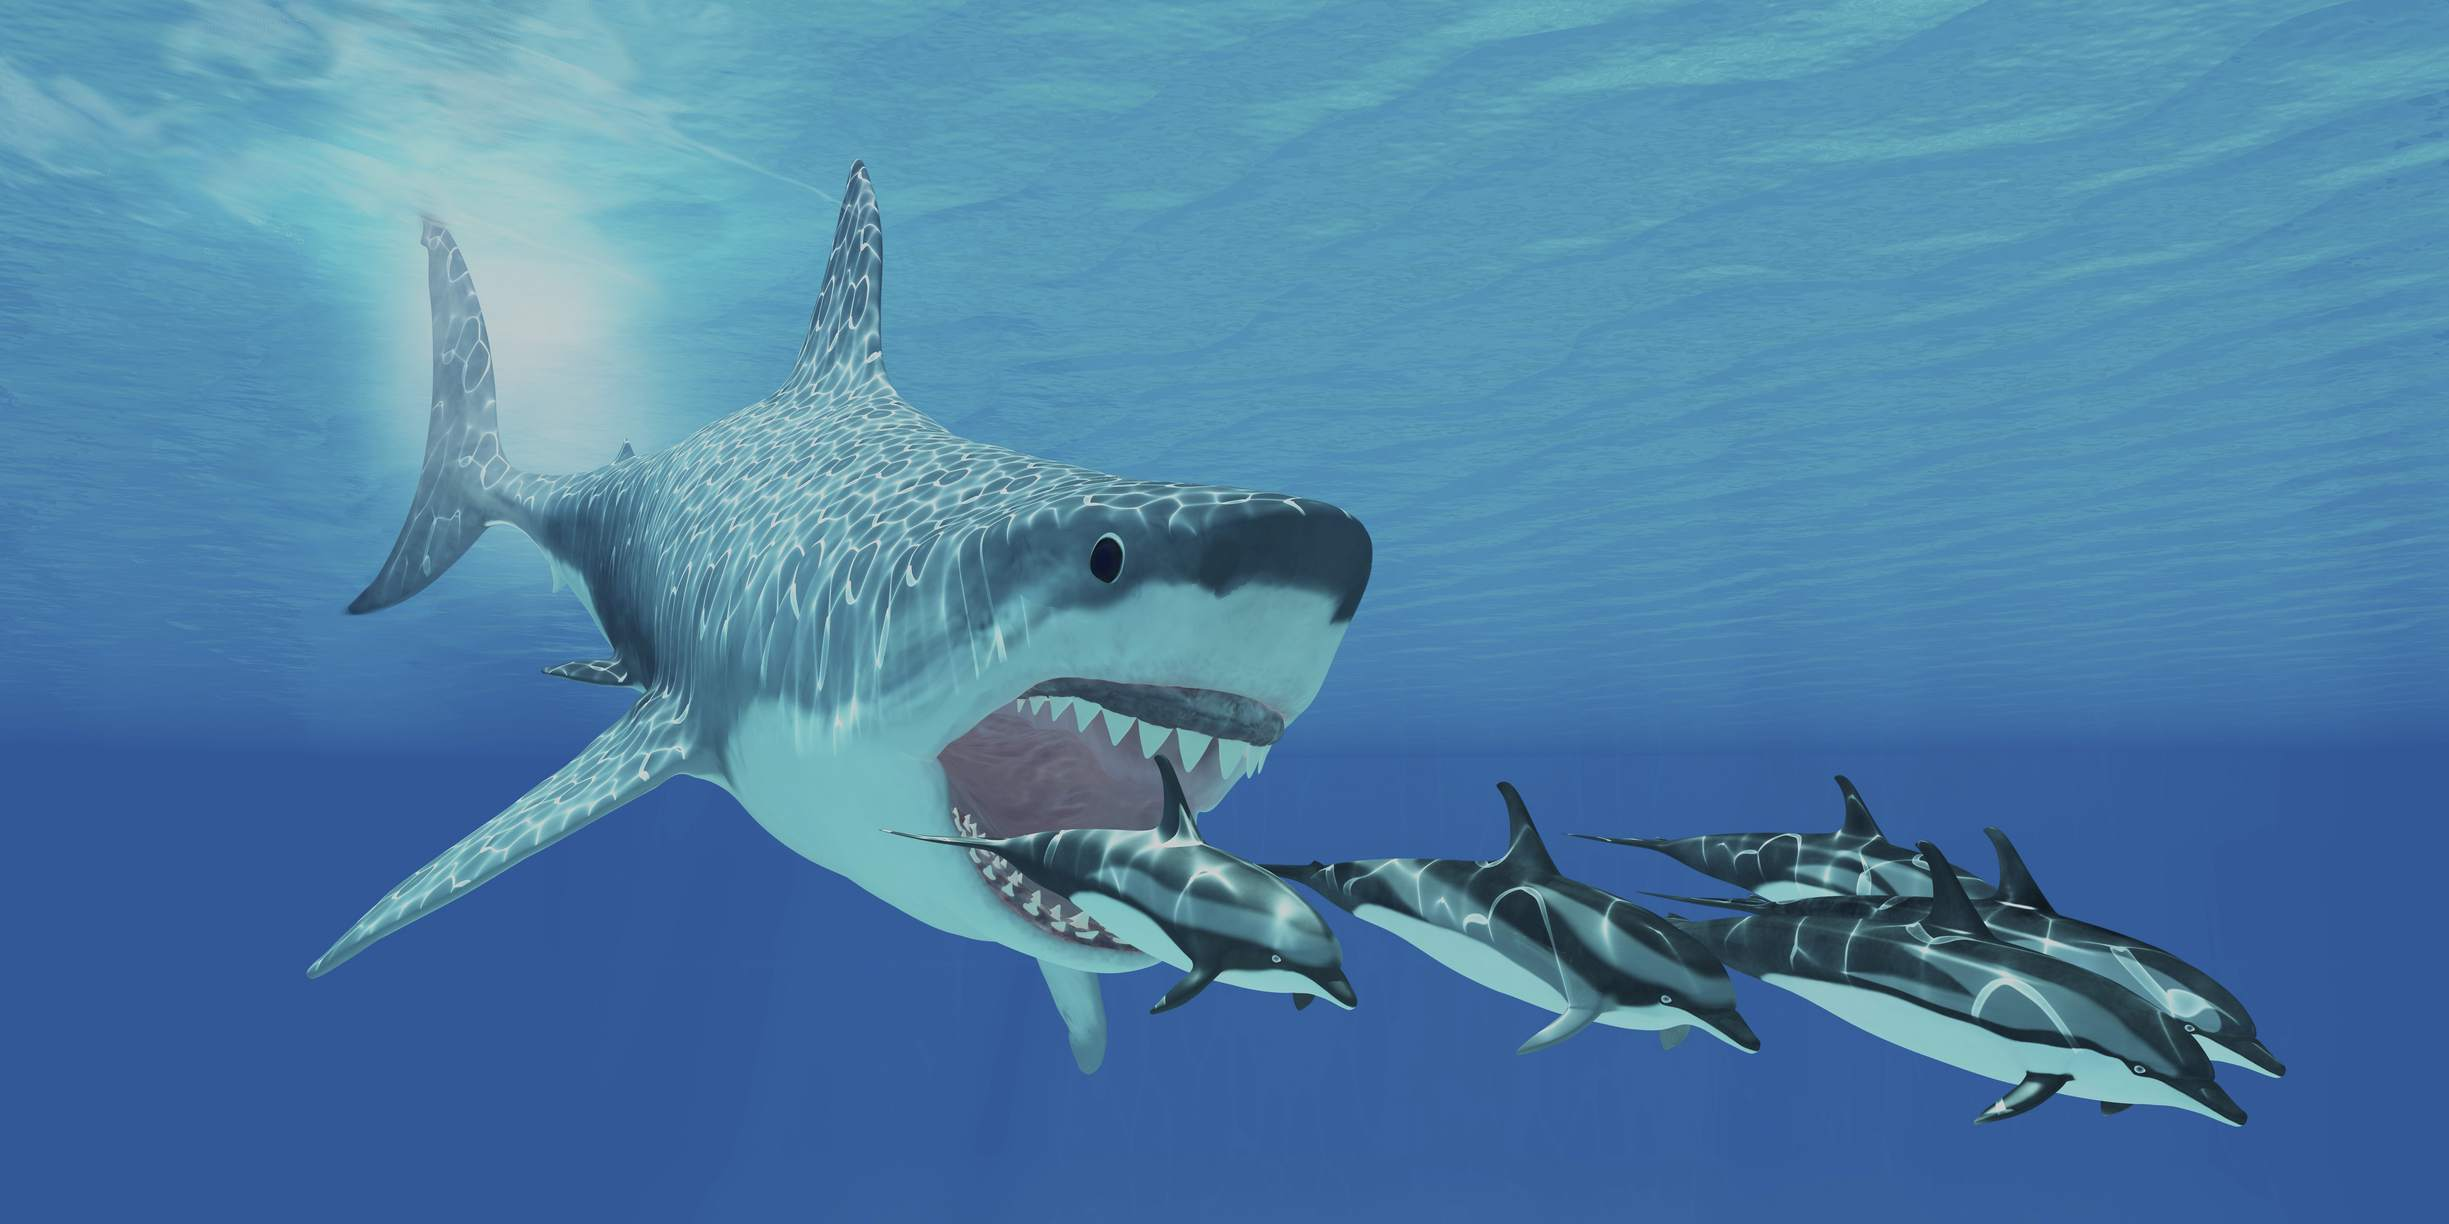 10 interesting facts about megalodon